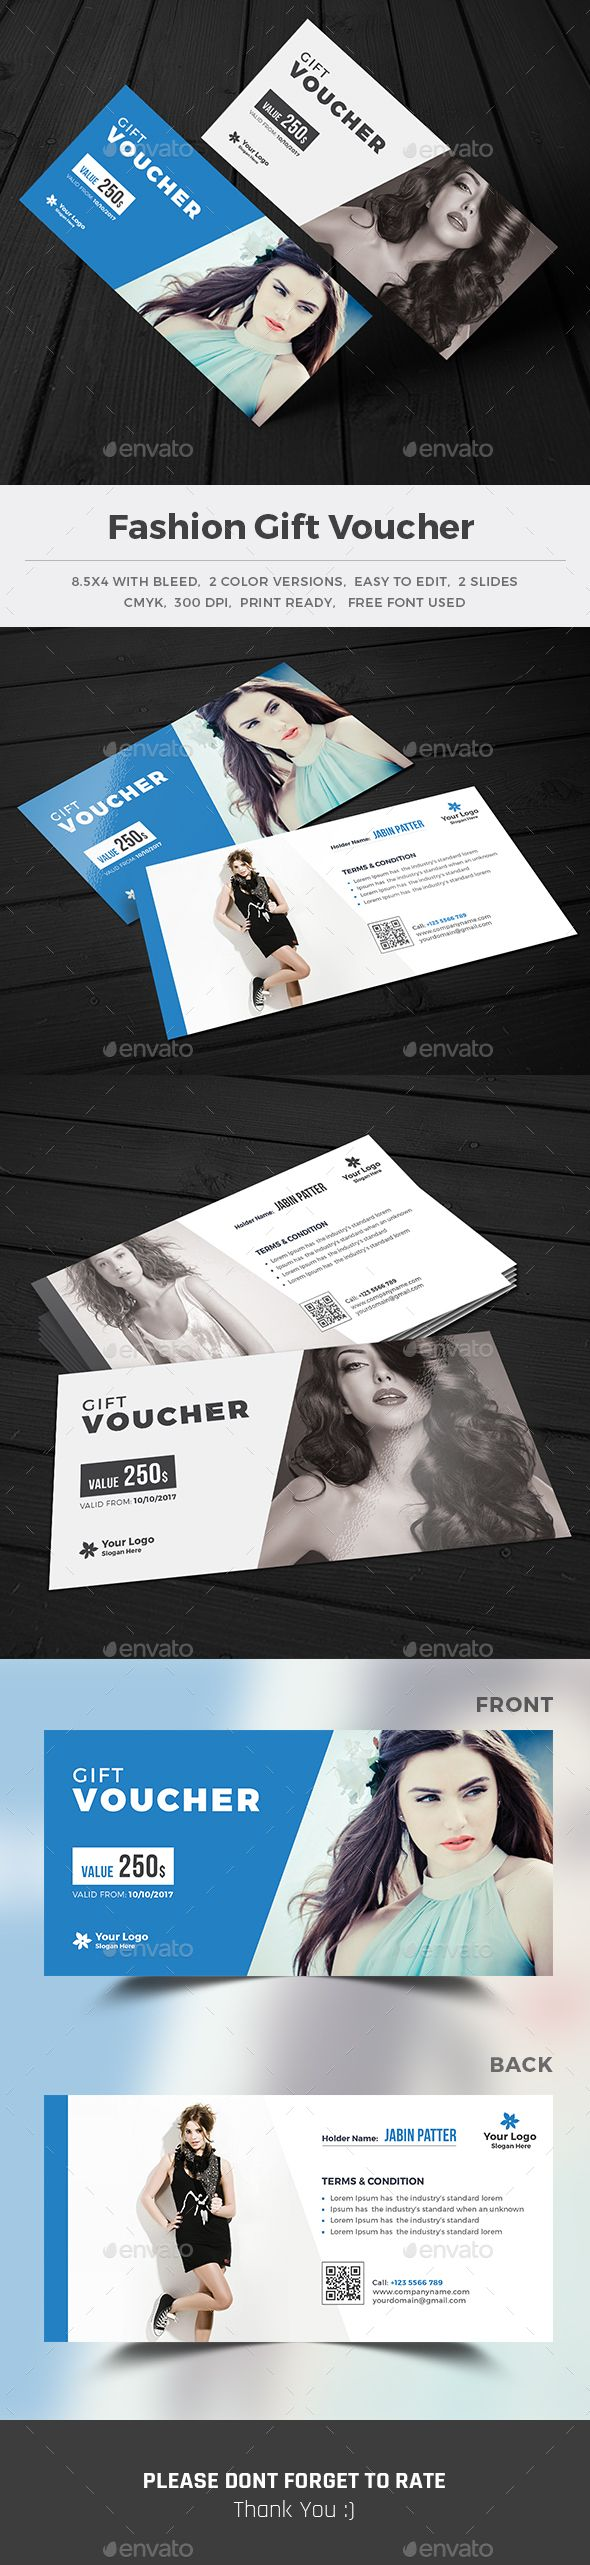 Fashion Gift Voucher Template PSD. Download here: http://graphicriver.net/item/fashion-gift-voucher-/16391160?ref=ksioks